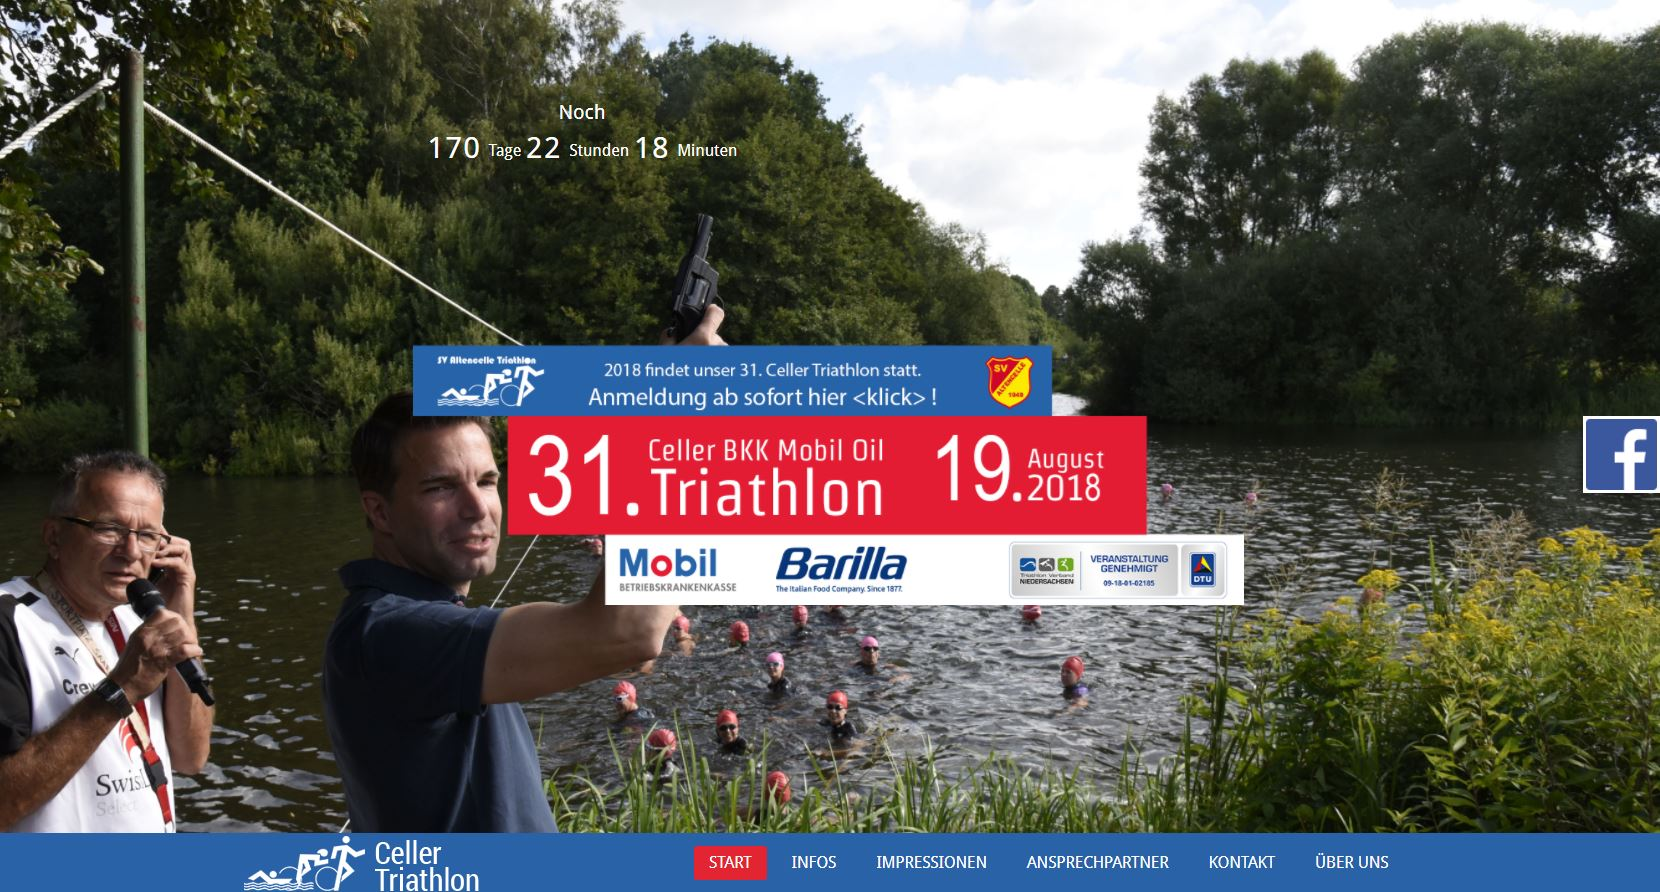 celler triathlon website screenshot